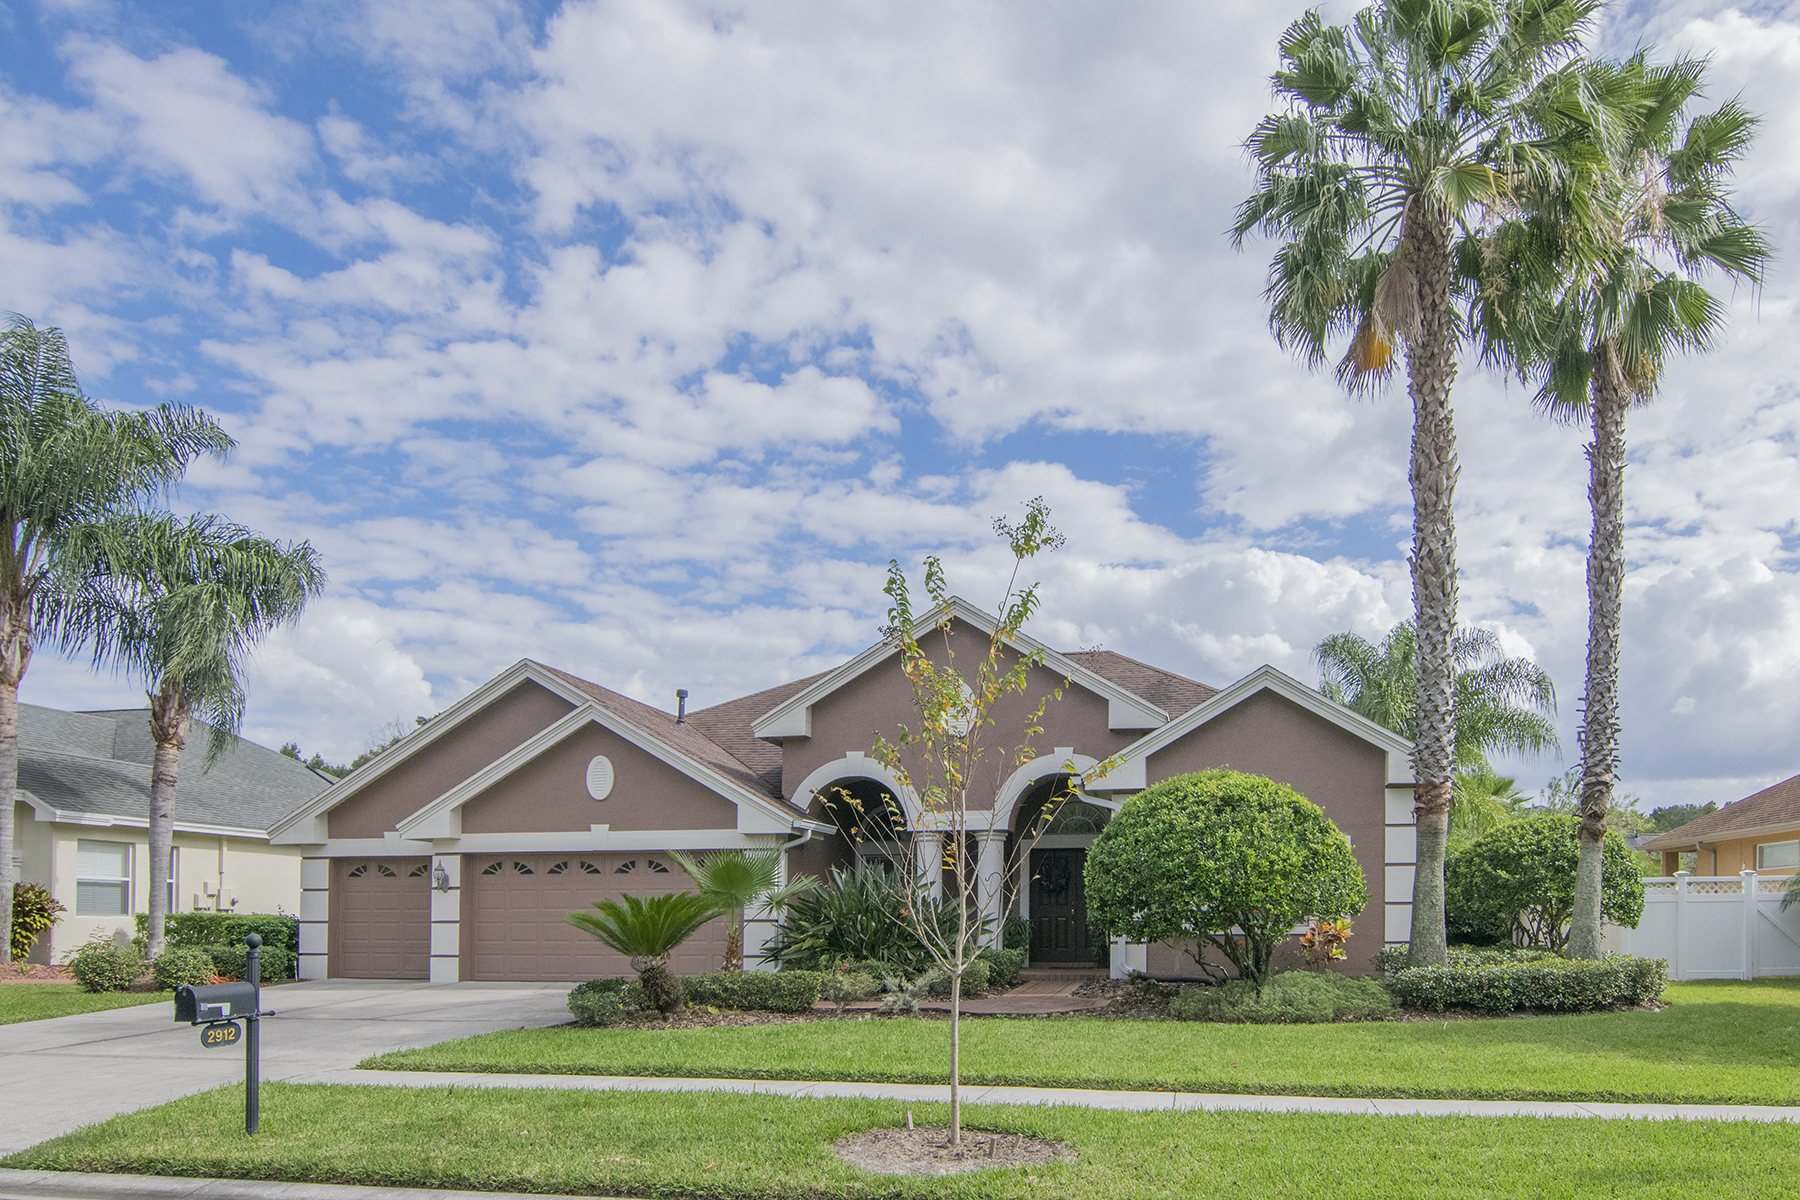 Casa Unifamiliar por un Venta en WESLEY CHAPEL 2912 Big Cypress Way Wesley Chapel, Florida, 33544 Estados Unidos